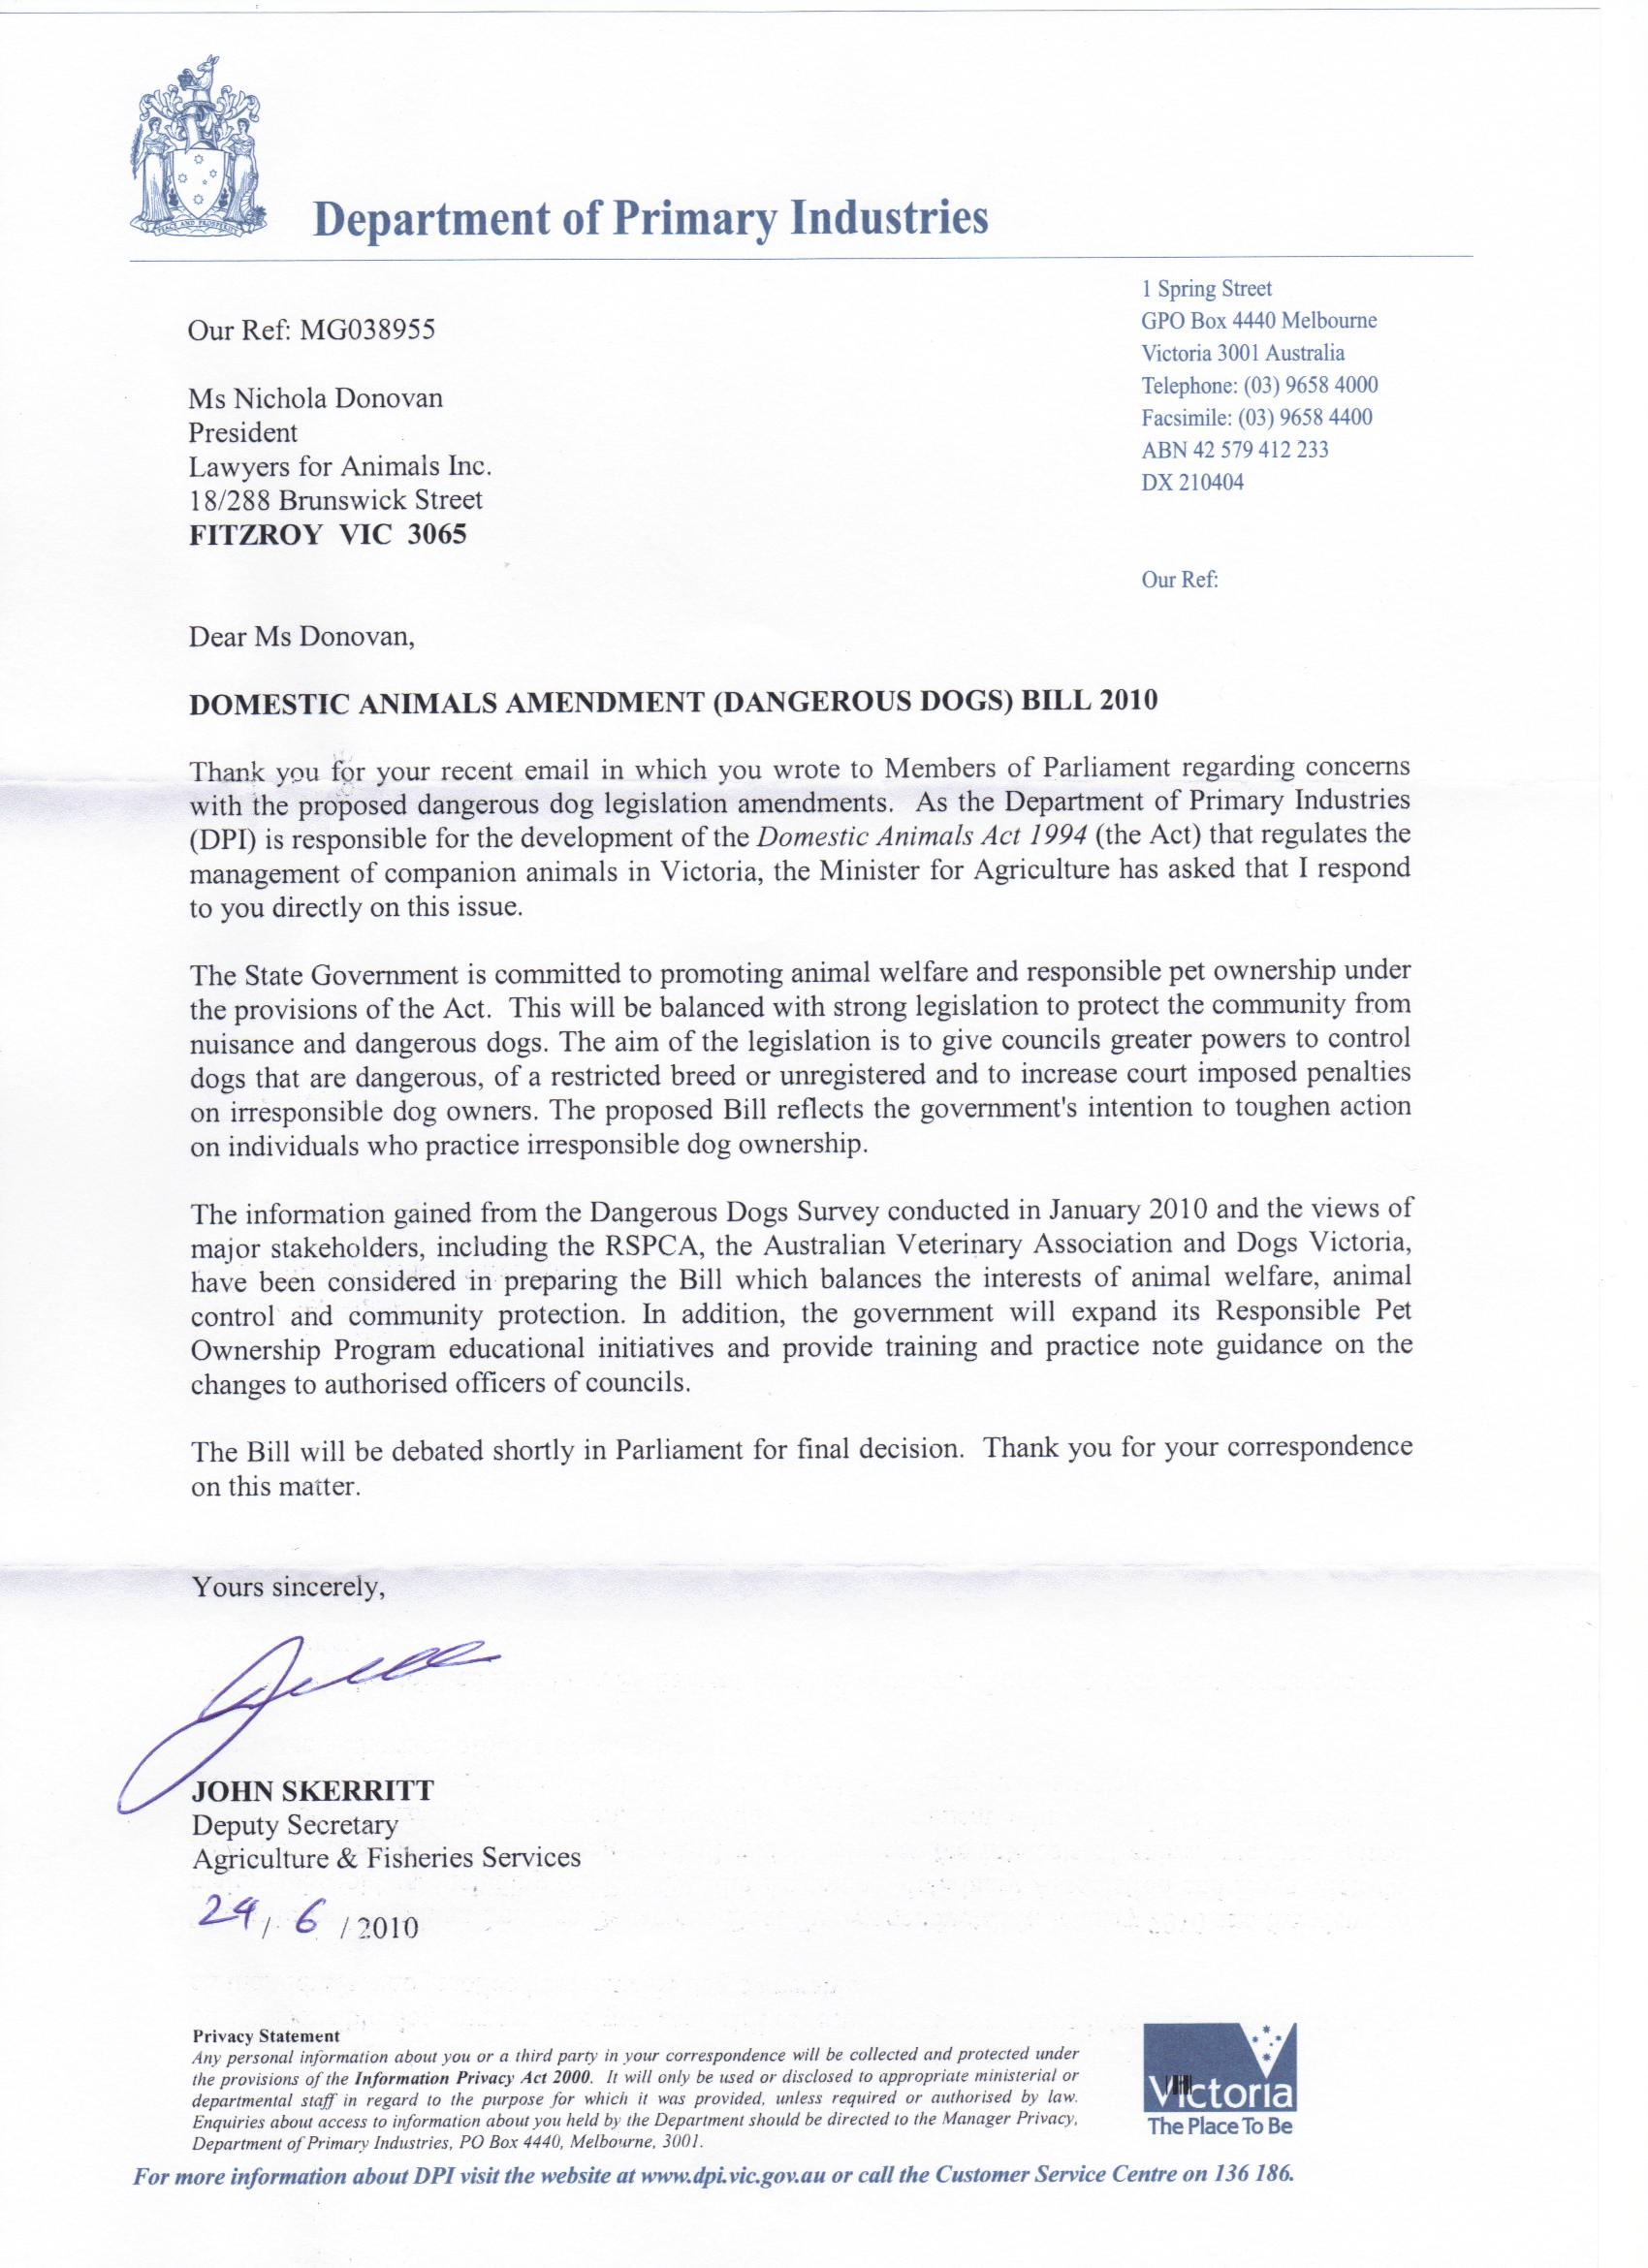 lfa-dogs-letter-from-dpi-240610-001